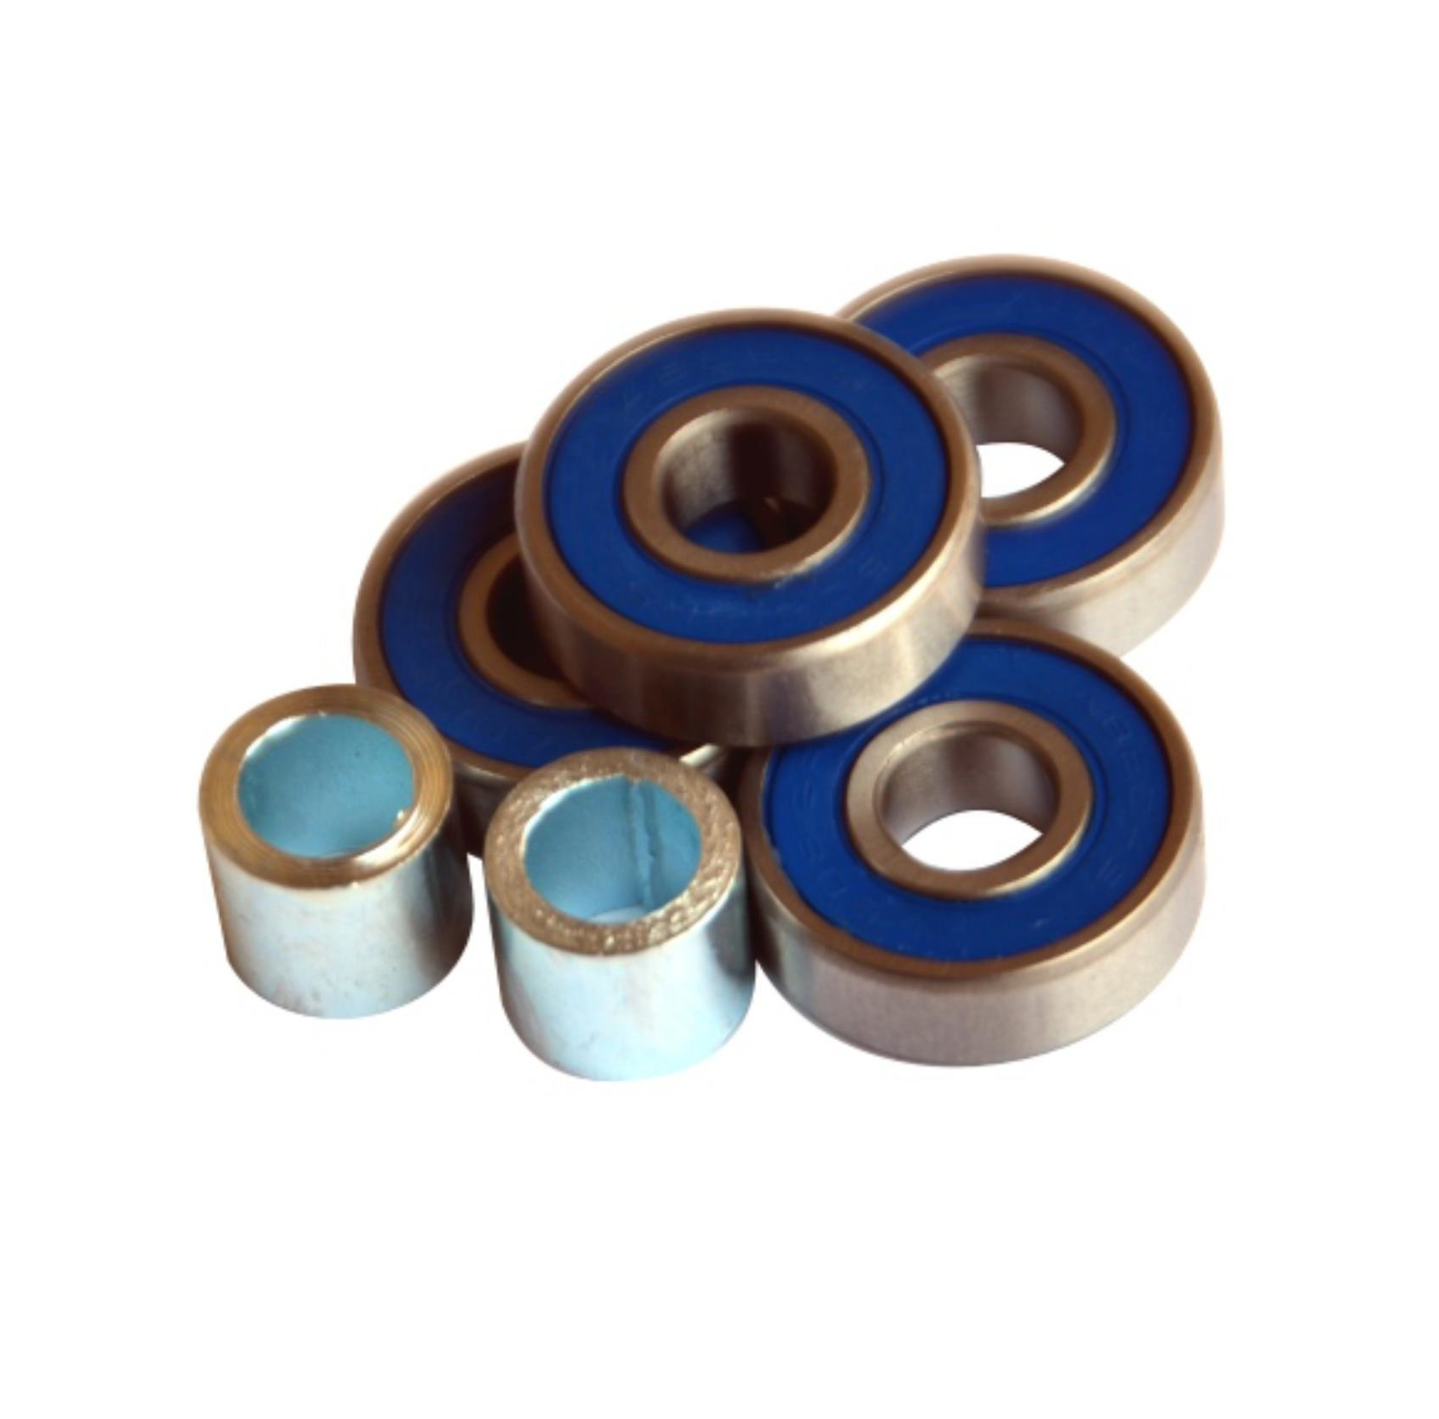 Image of 8mm X 22mm - Scooter Bearings (Set of 4/ Royal Blue)